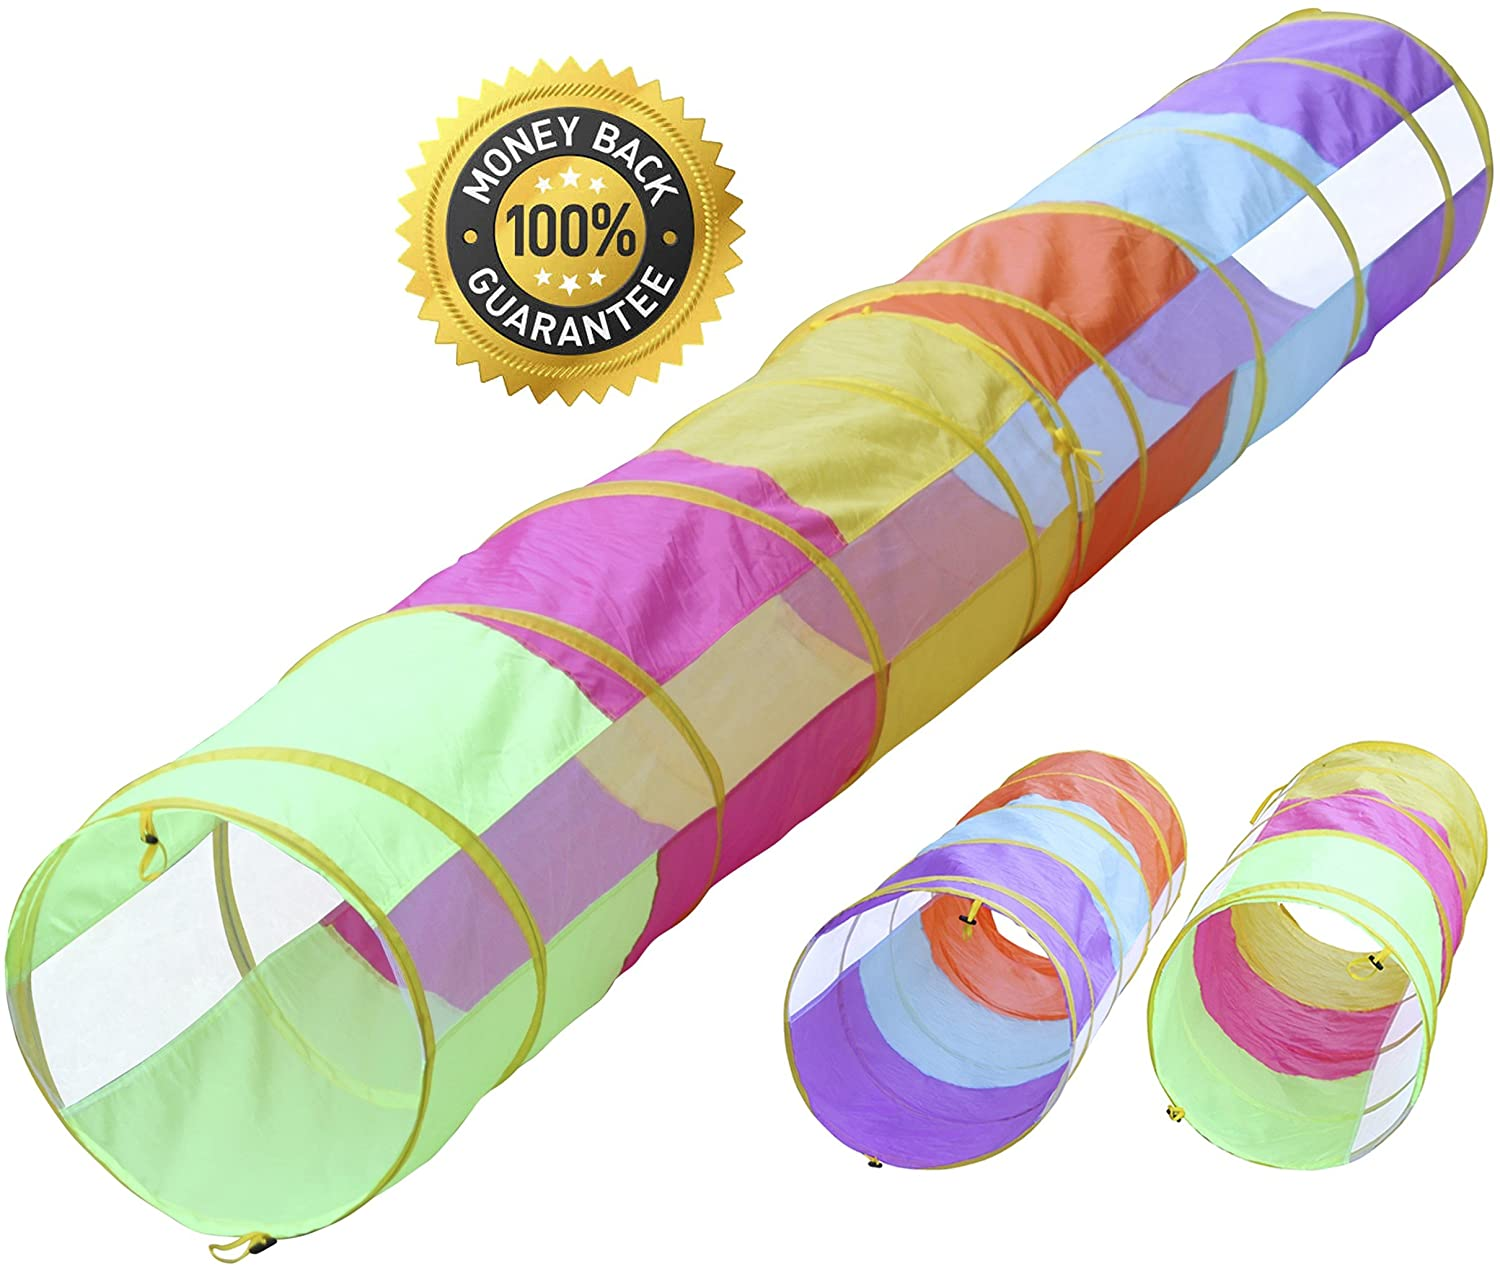 Hide N Side 12 ft Tunnel/6 ft Tunnel 2 Pack, Peek-a-Boo Kids Play Tunnel, Indoor & Outdoor Pop Up Children Crawl Tunnel Toy Tube, Dog Agility Tunnel, Cat Tunnel Hide-n-Side